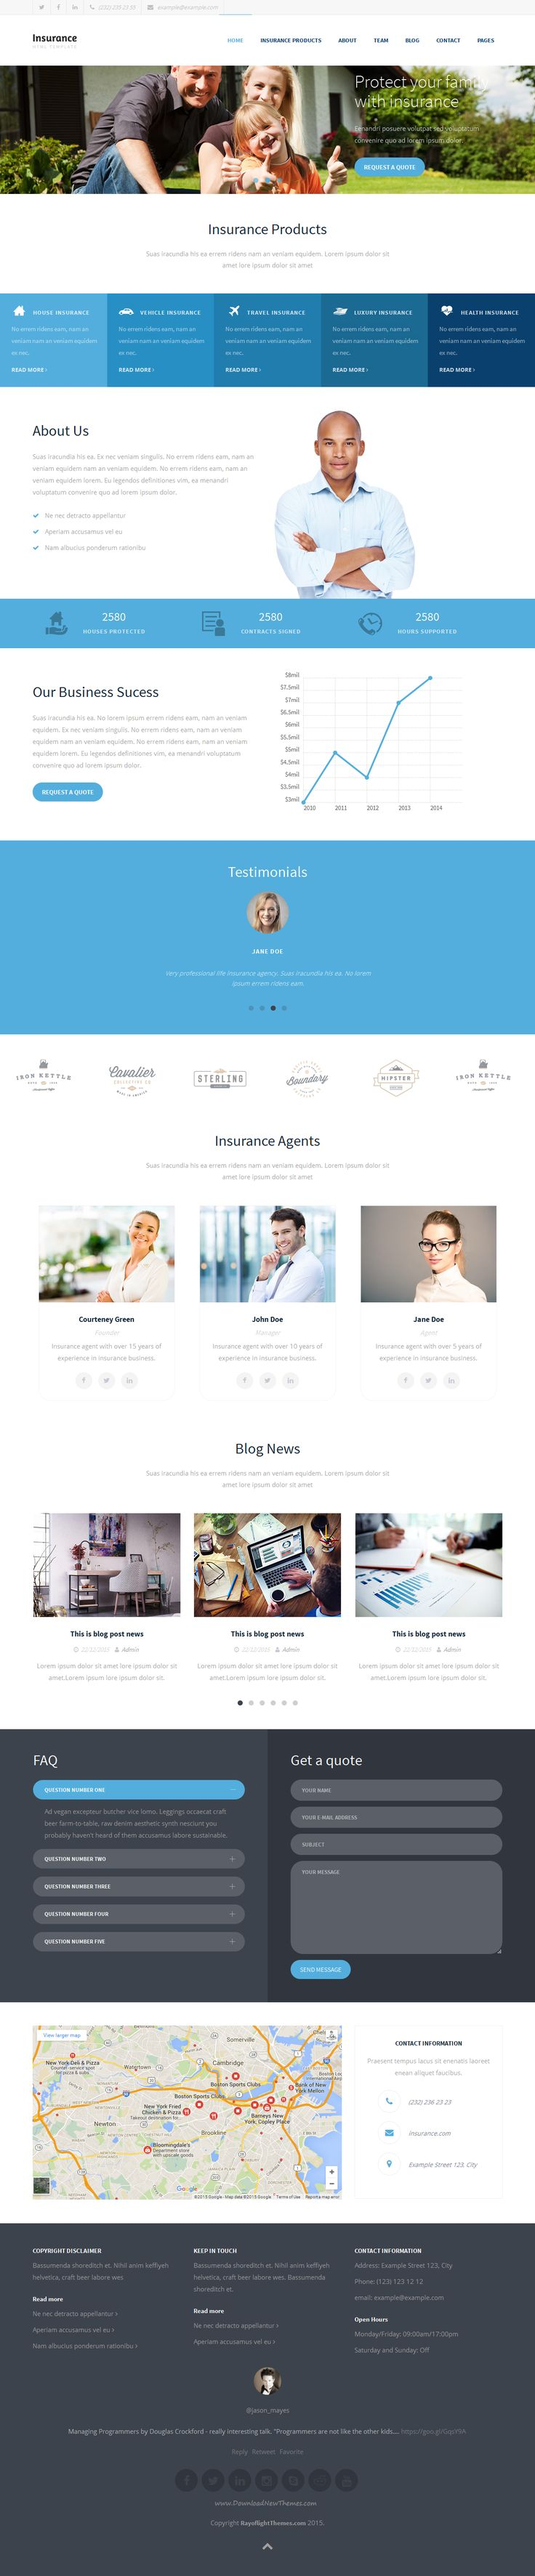 Clean and responsive HTML5 #website template for #insurance business or similar website. One page design + 7 inner pages, easy to create multi page website. Flexible and modern design.